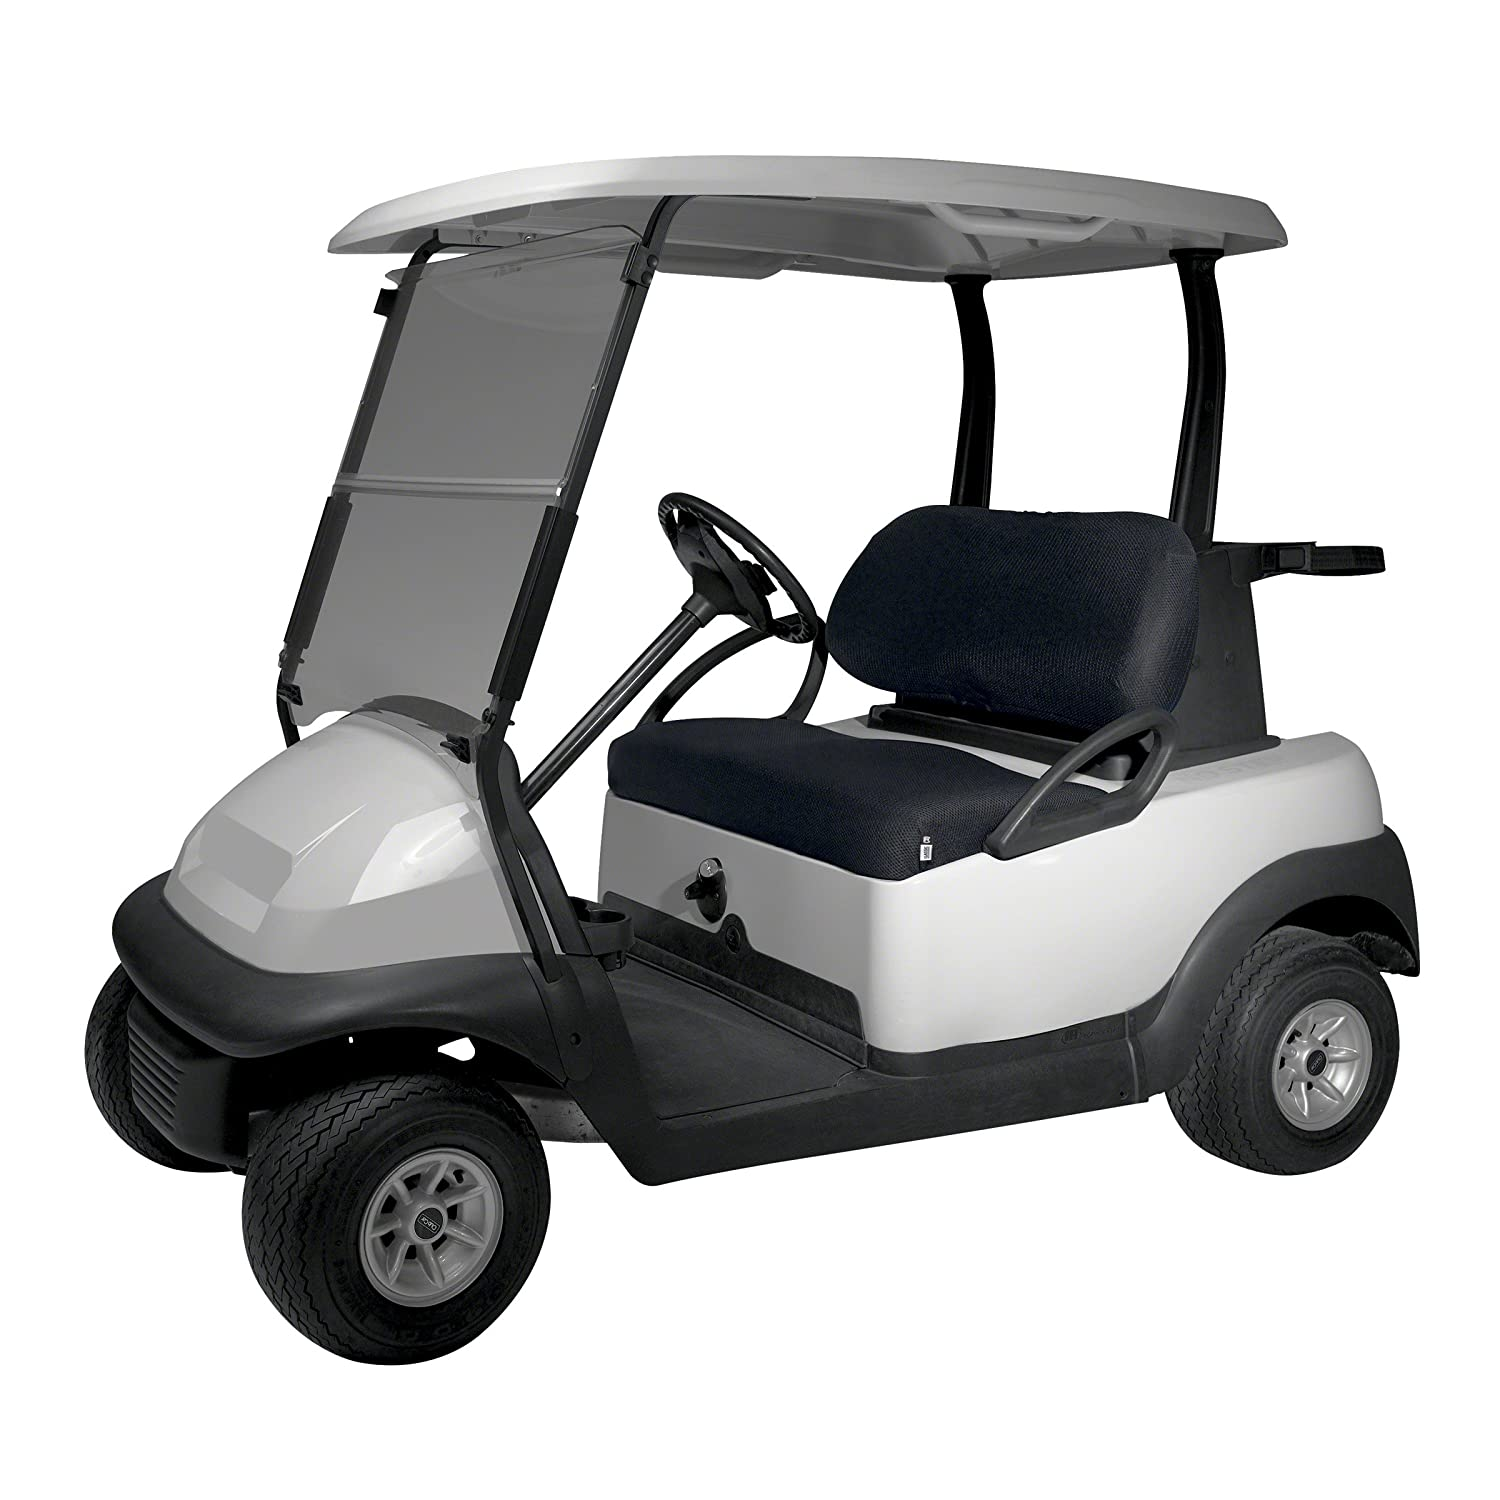 Ezgo Golf Cart Accessories Html on ezgo hunting golf carts, ezgo gas golf carts, ez go cart accessories, ezgo lifted carts, lsv golf carts and accessories, ezgo golf carts dealers, ezgo golf car, ezgo electric carts, ezgo utility golf carts, ezgo custom golf carts, ezgo txt electric manual, custom golf carts accessories, club car cart accessories, golf car accessories,